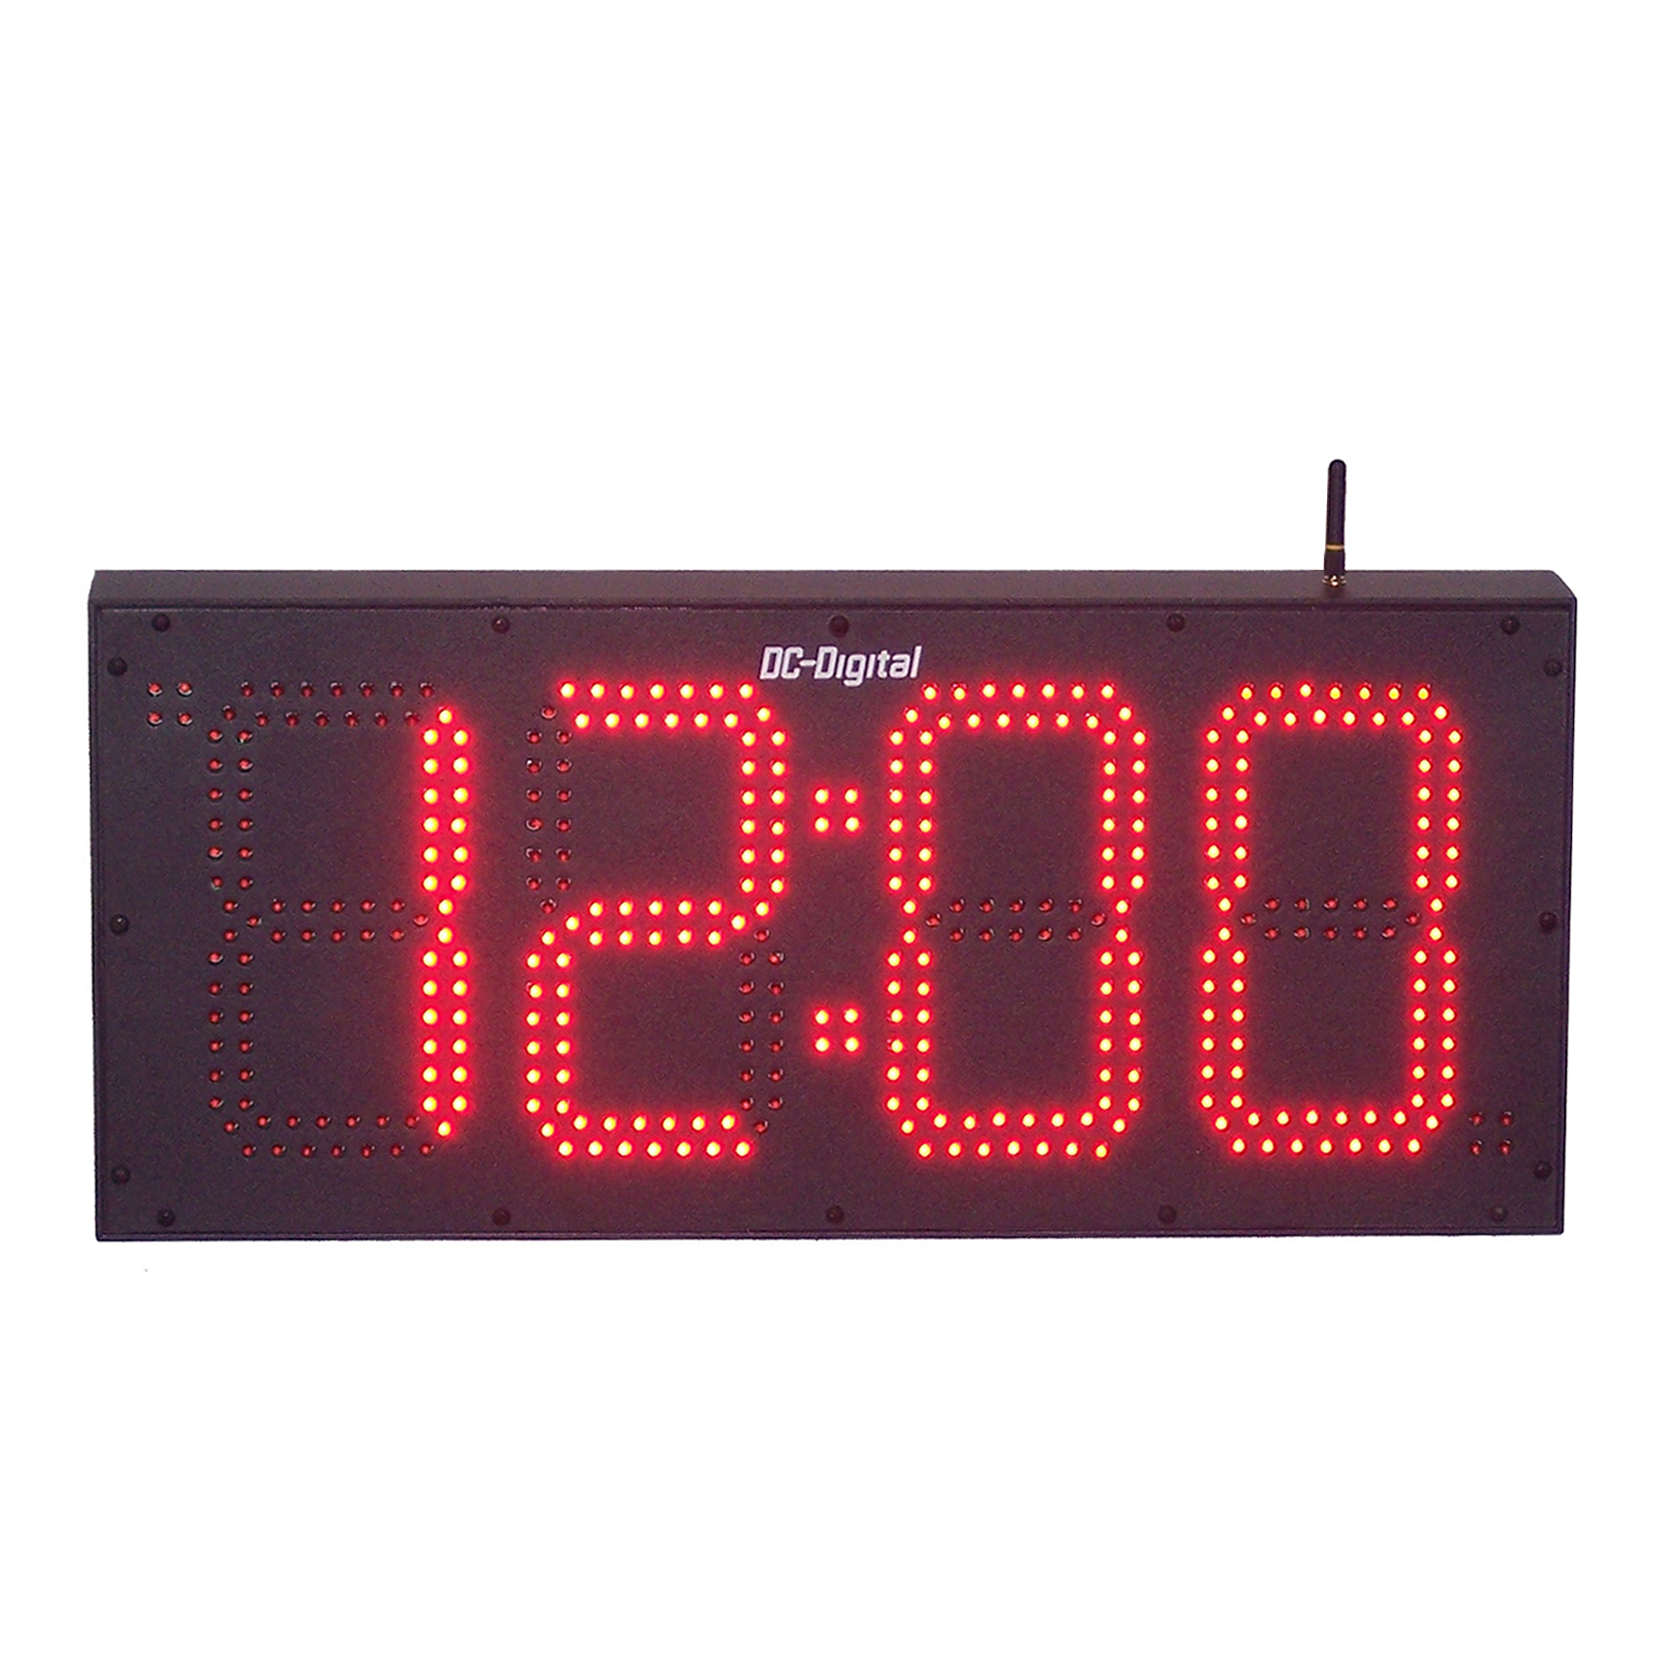 (DC-80T-DN-BCD) 8.0 Inch LED Digital, BCD Rotary Set Switches, Multi-Input (PLC-Relay-Switch-Sensor) Controlled, Countdown Timer (OUTDOOR) 3